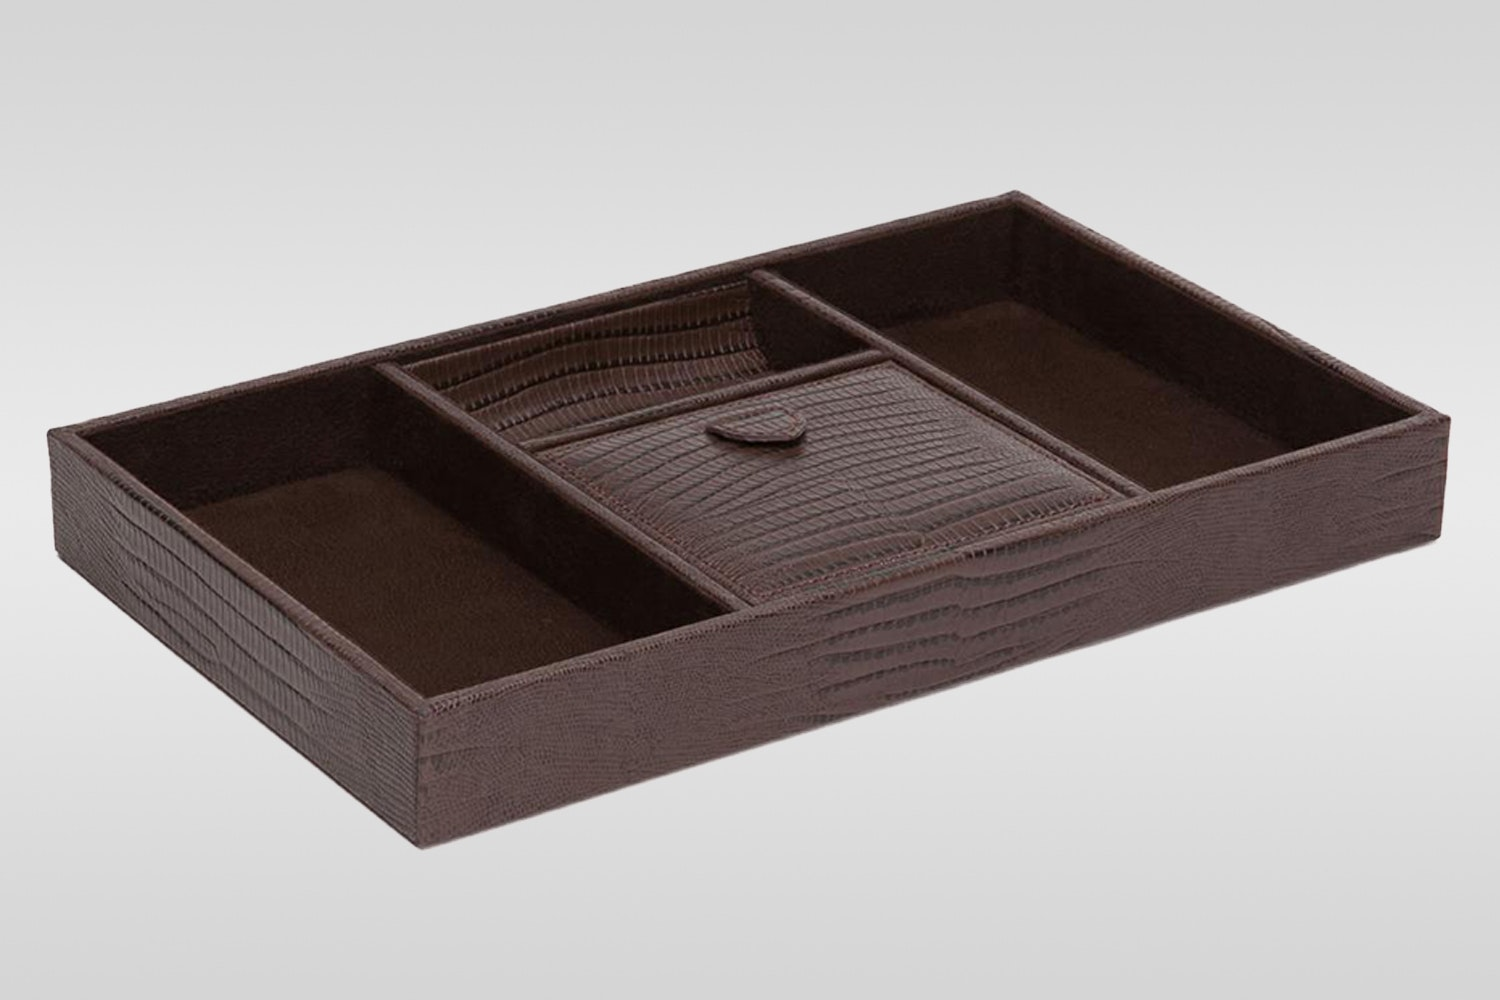 Blake Valet Tray: Brown Teju Lizard Leather with Brown Suede